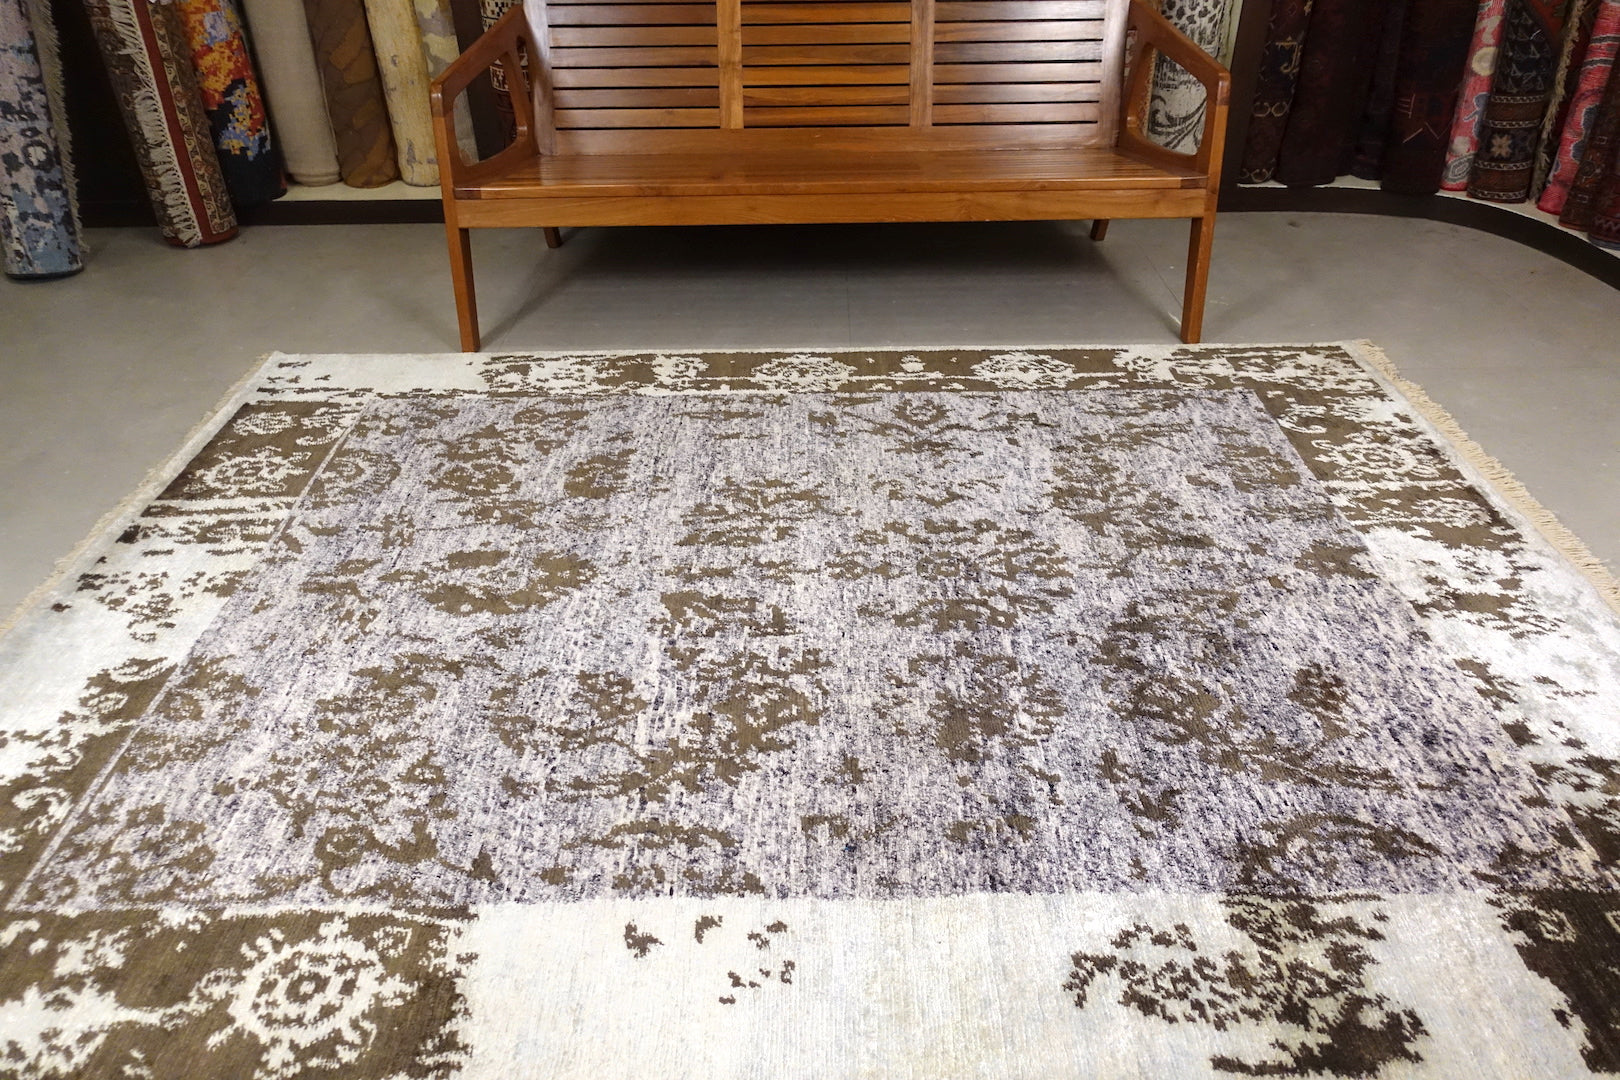 An almost 6 feet by 8 feet rug with an erased design based on the art nouveau style. The colour are dark green on a light creamish blue base.